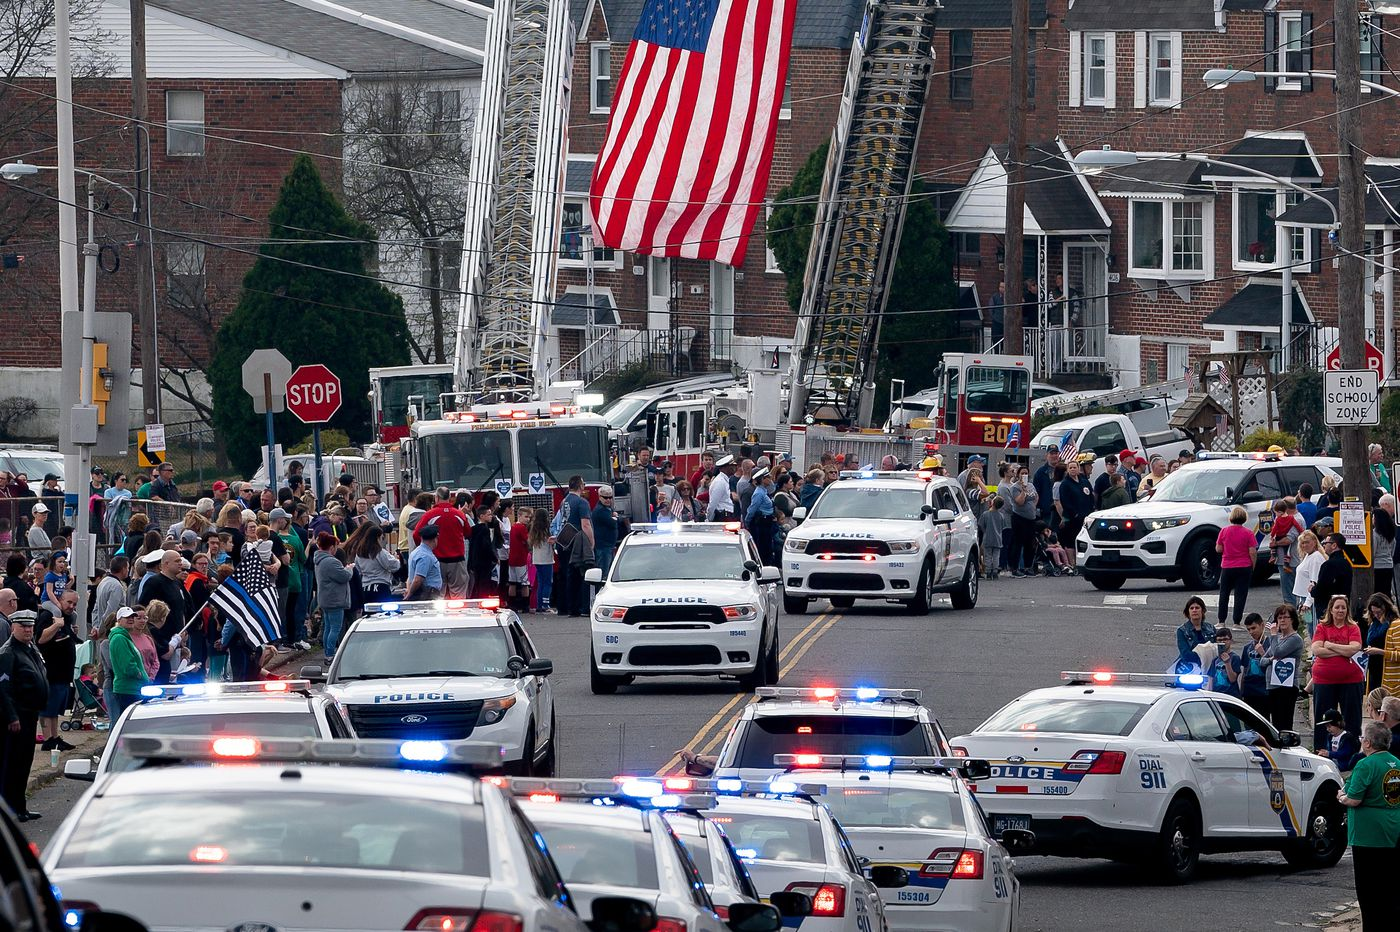 Police vehicle procession honors Sgt. James O'Connor IV, slain in the line of duty a week ago